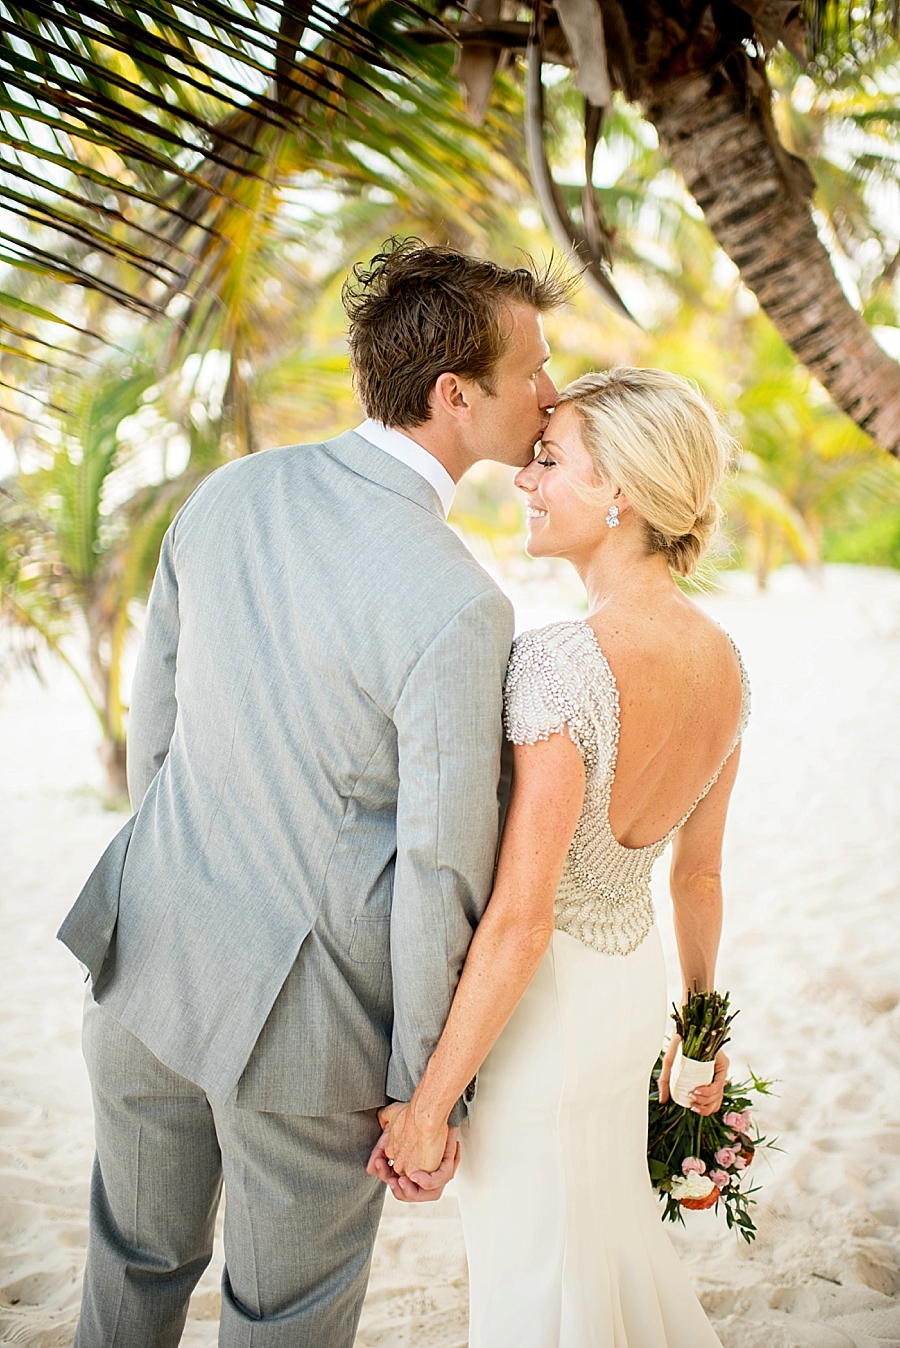 destinationweddingphotographer_0062.jpg